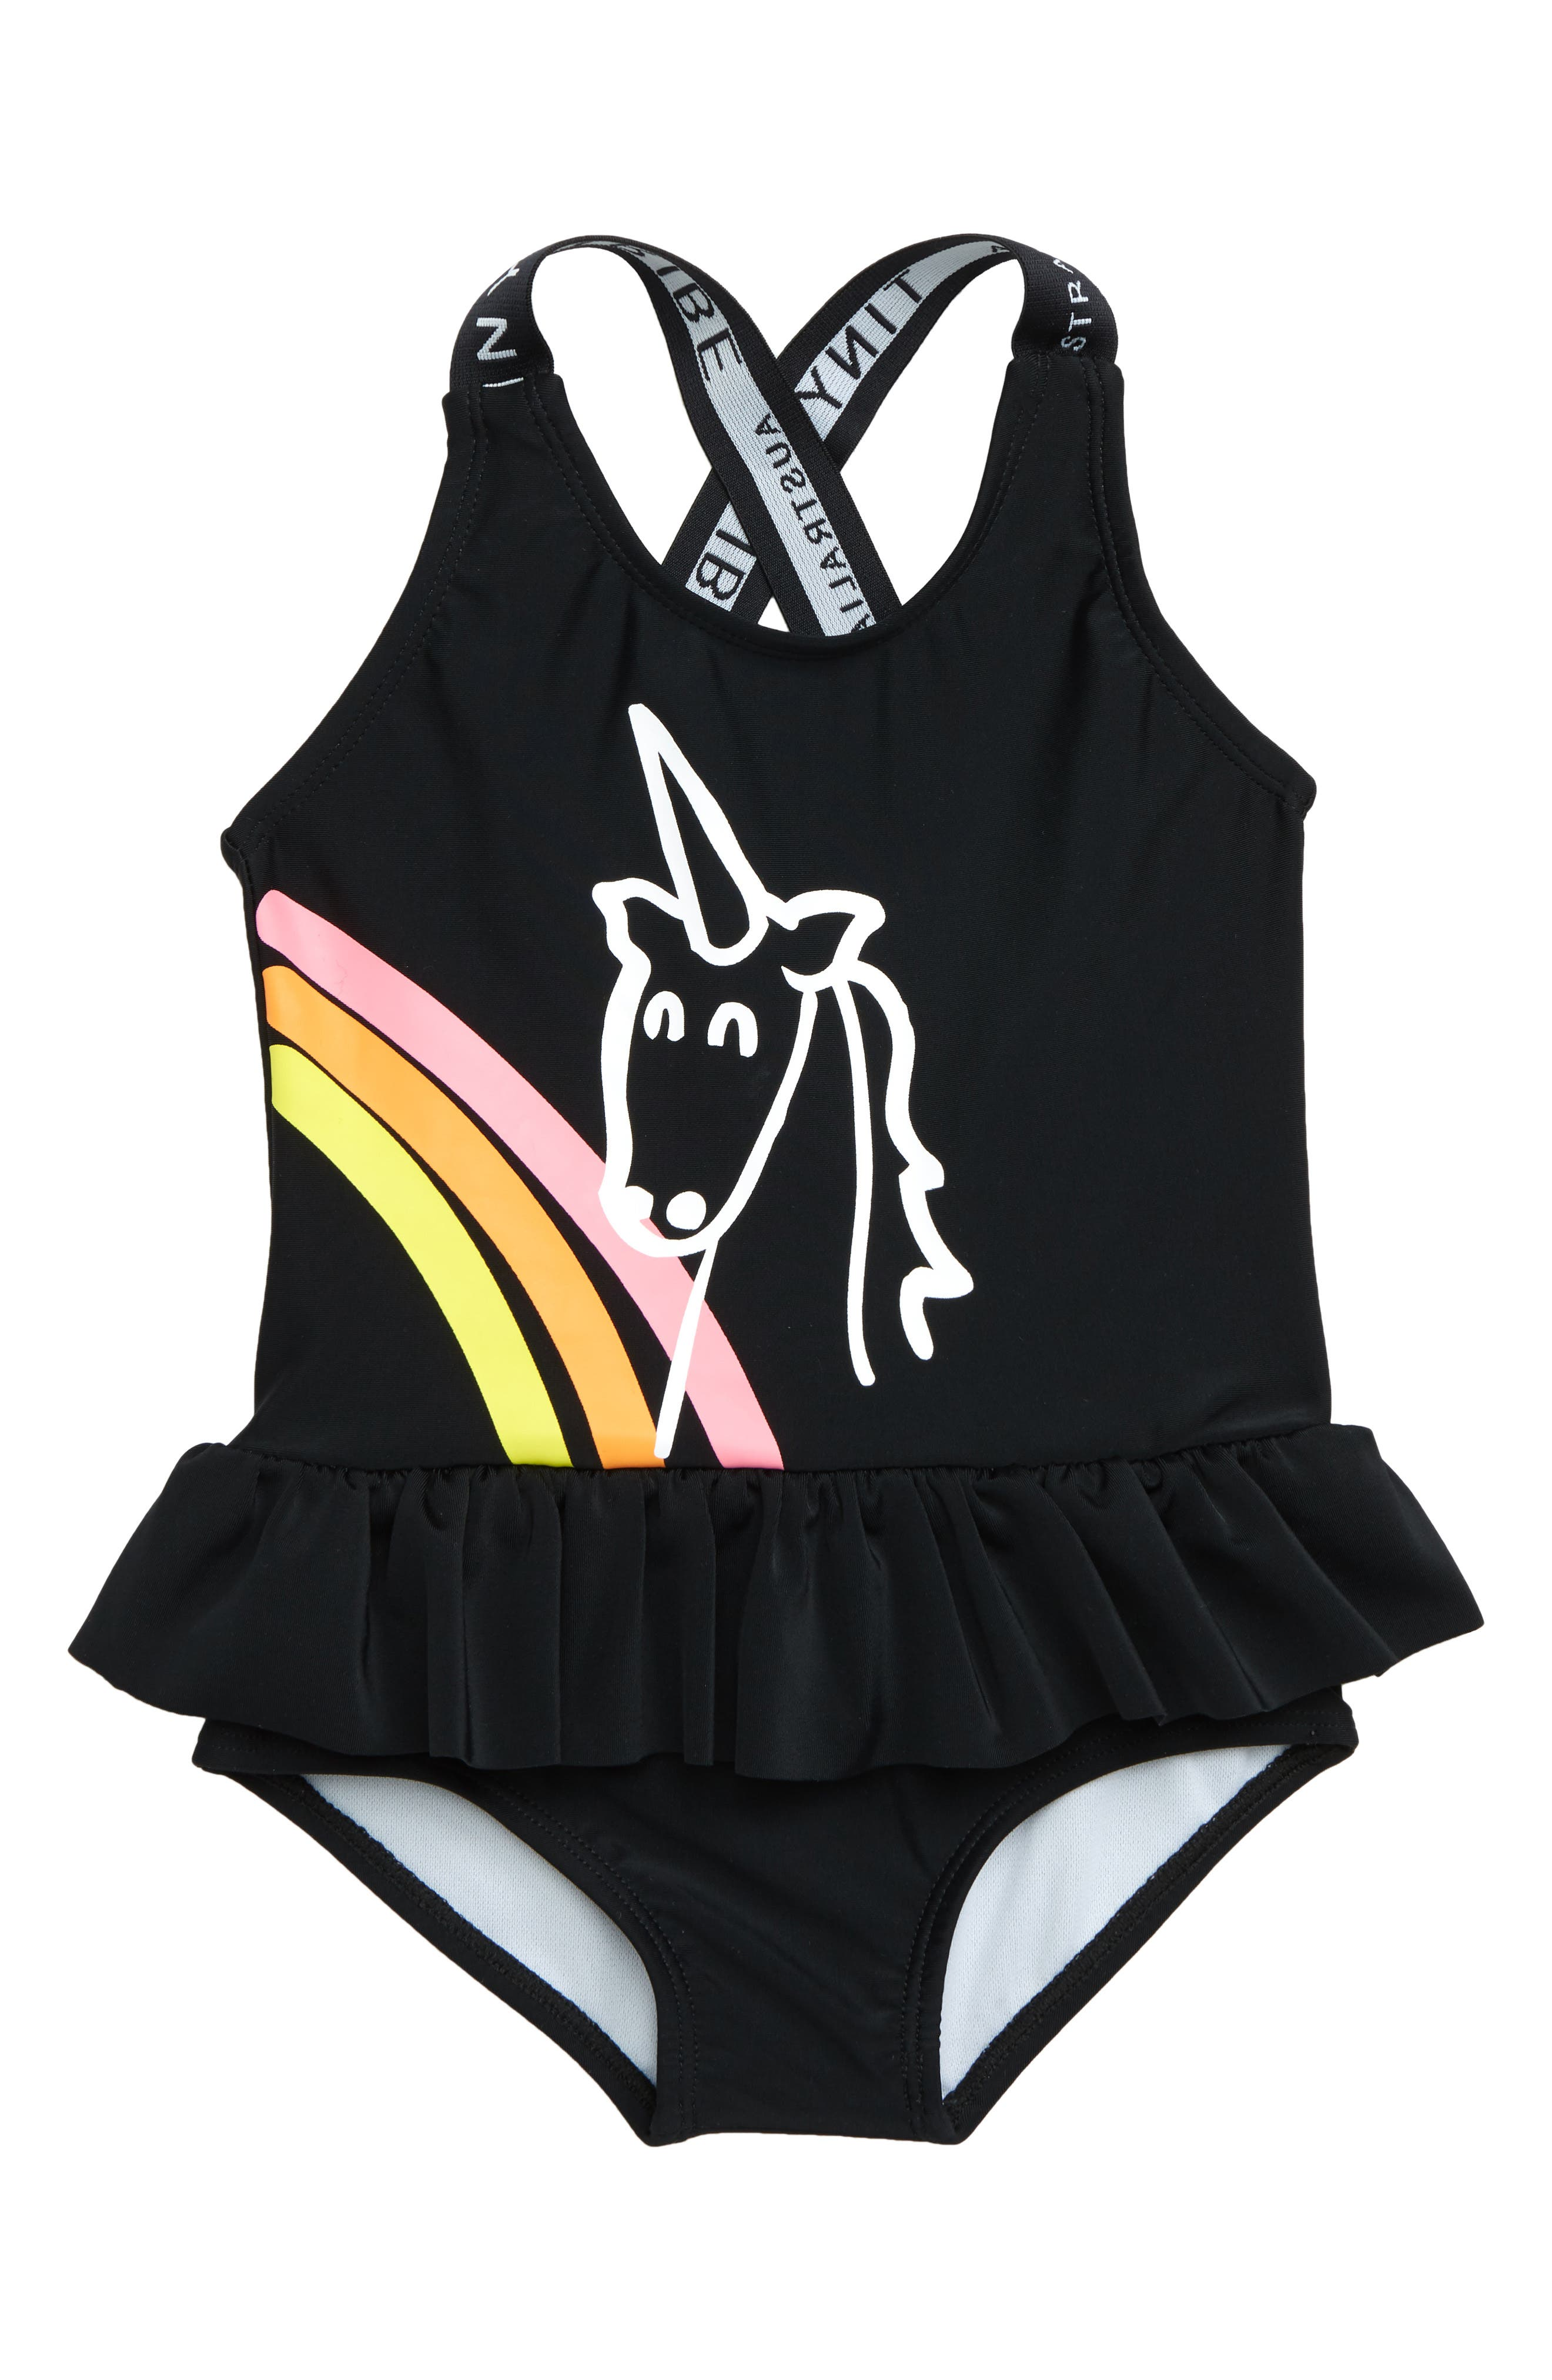 TINY TRIBE, Unicorn Skirted One-Piece Swimsuit, Main thumbnail 1, color, 001